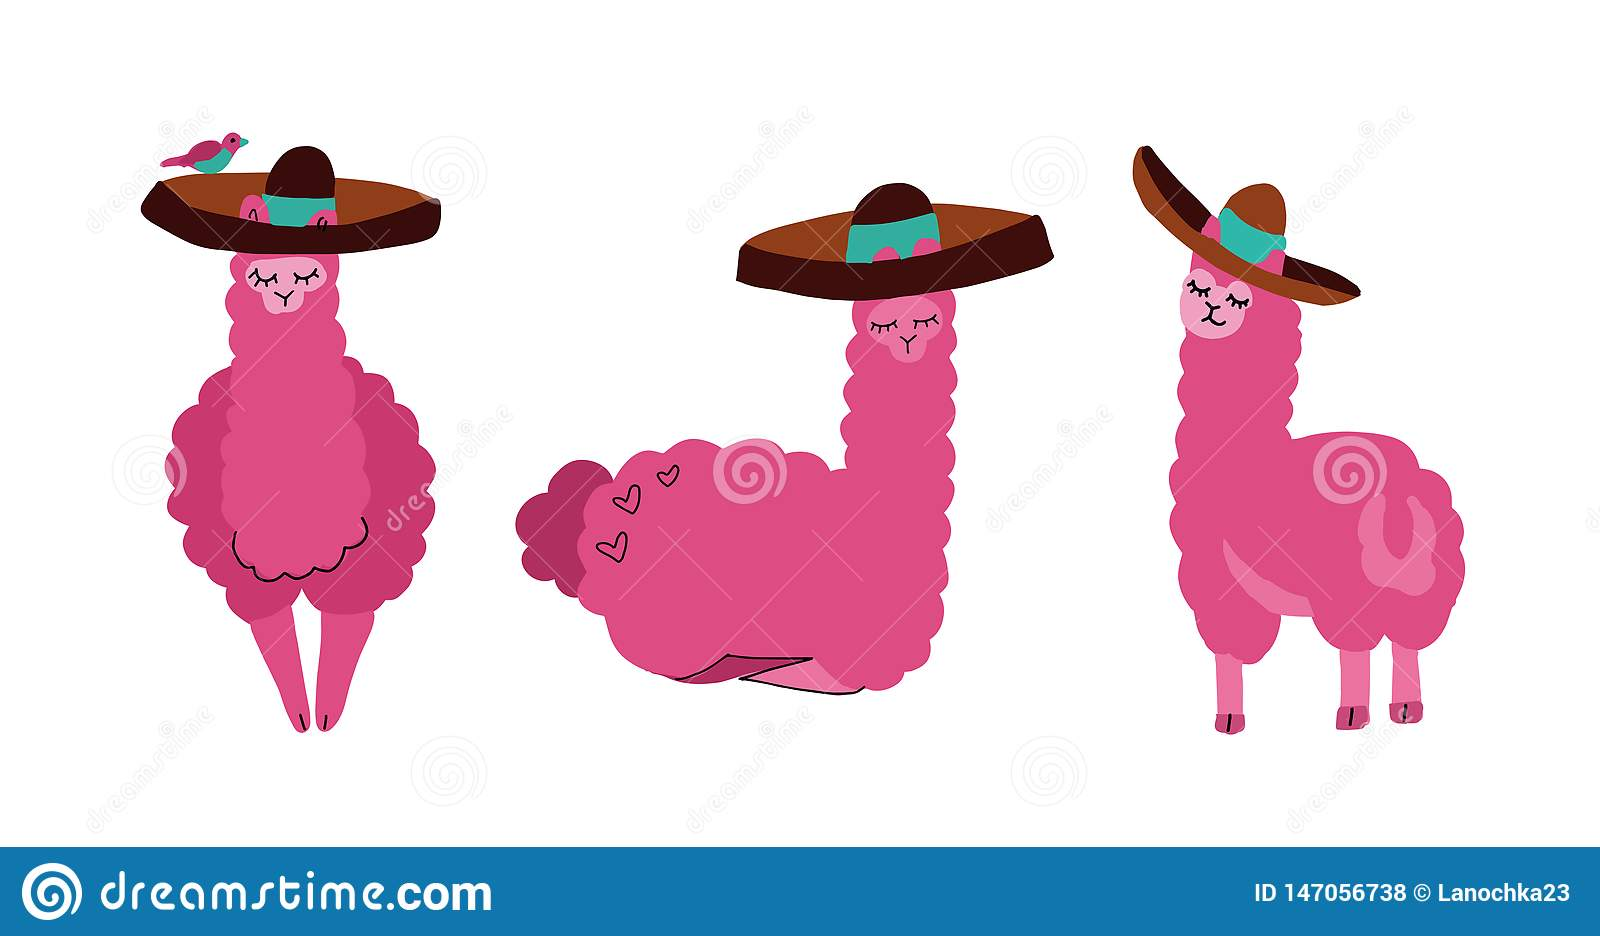 Cute llamas and alpacas set in sombrero. Funny smiling animals isolated on white background. Hand drawn llama character